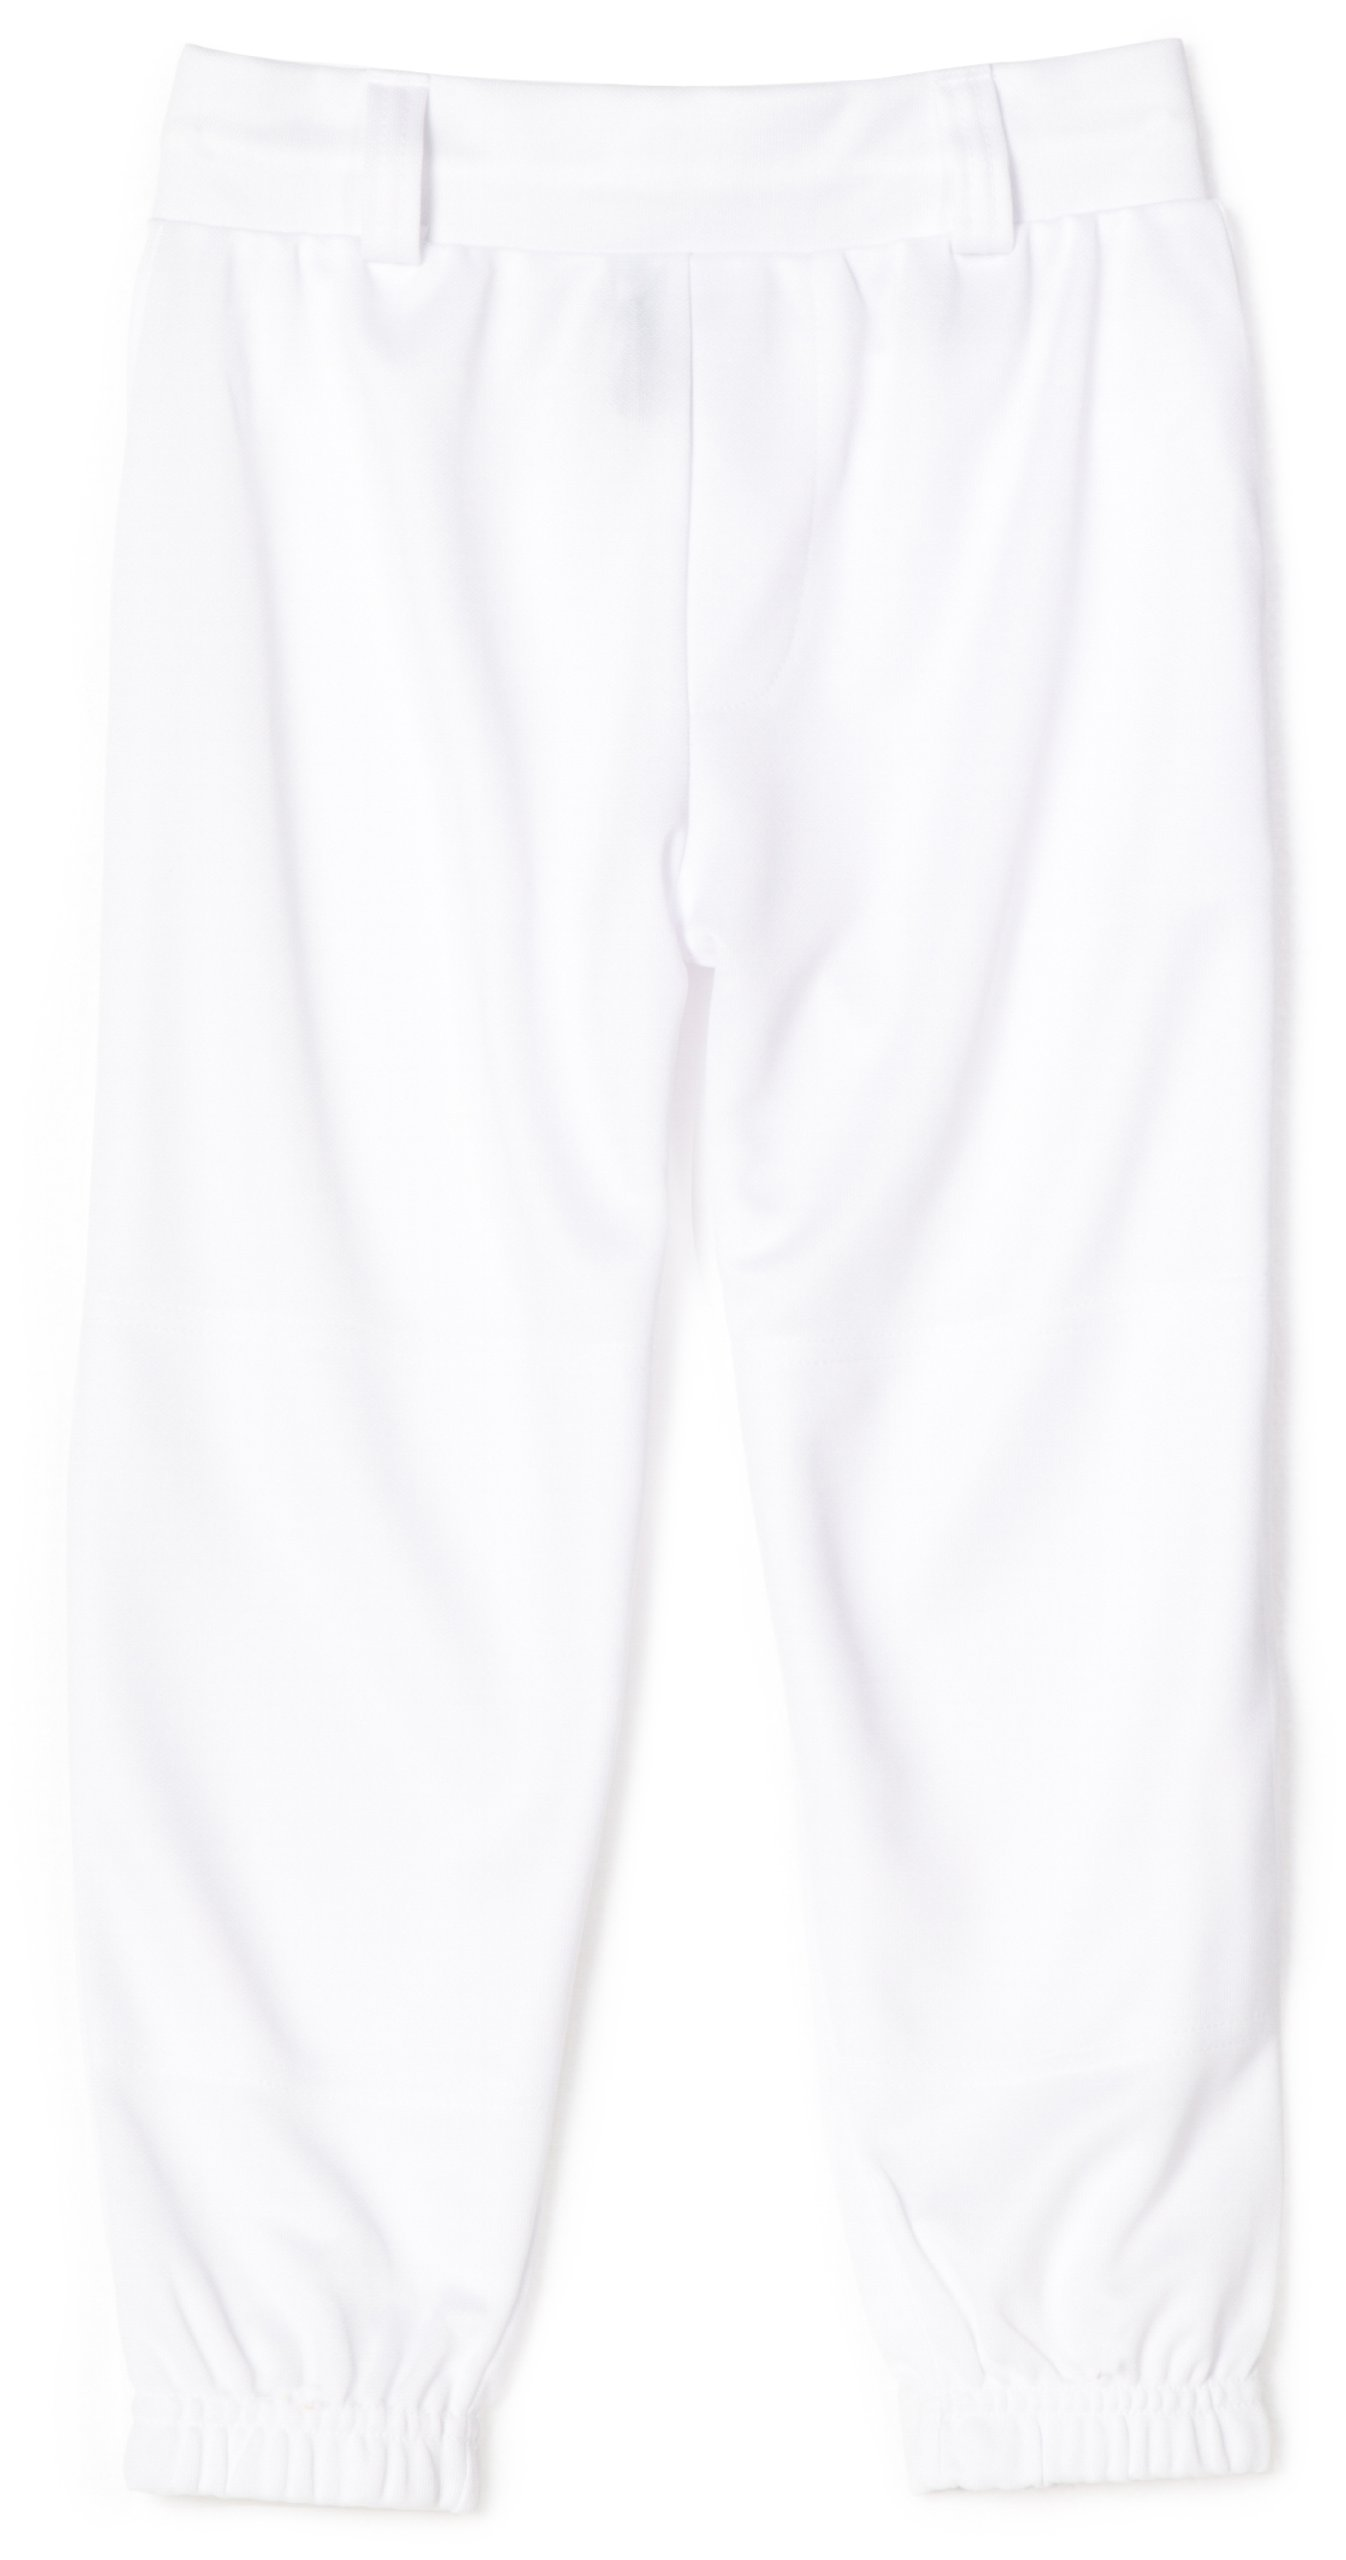 Easton Youth Pro Pull Up Pant, White, X-Small